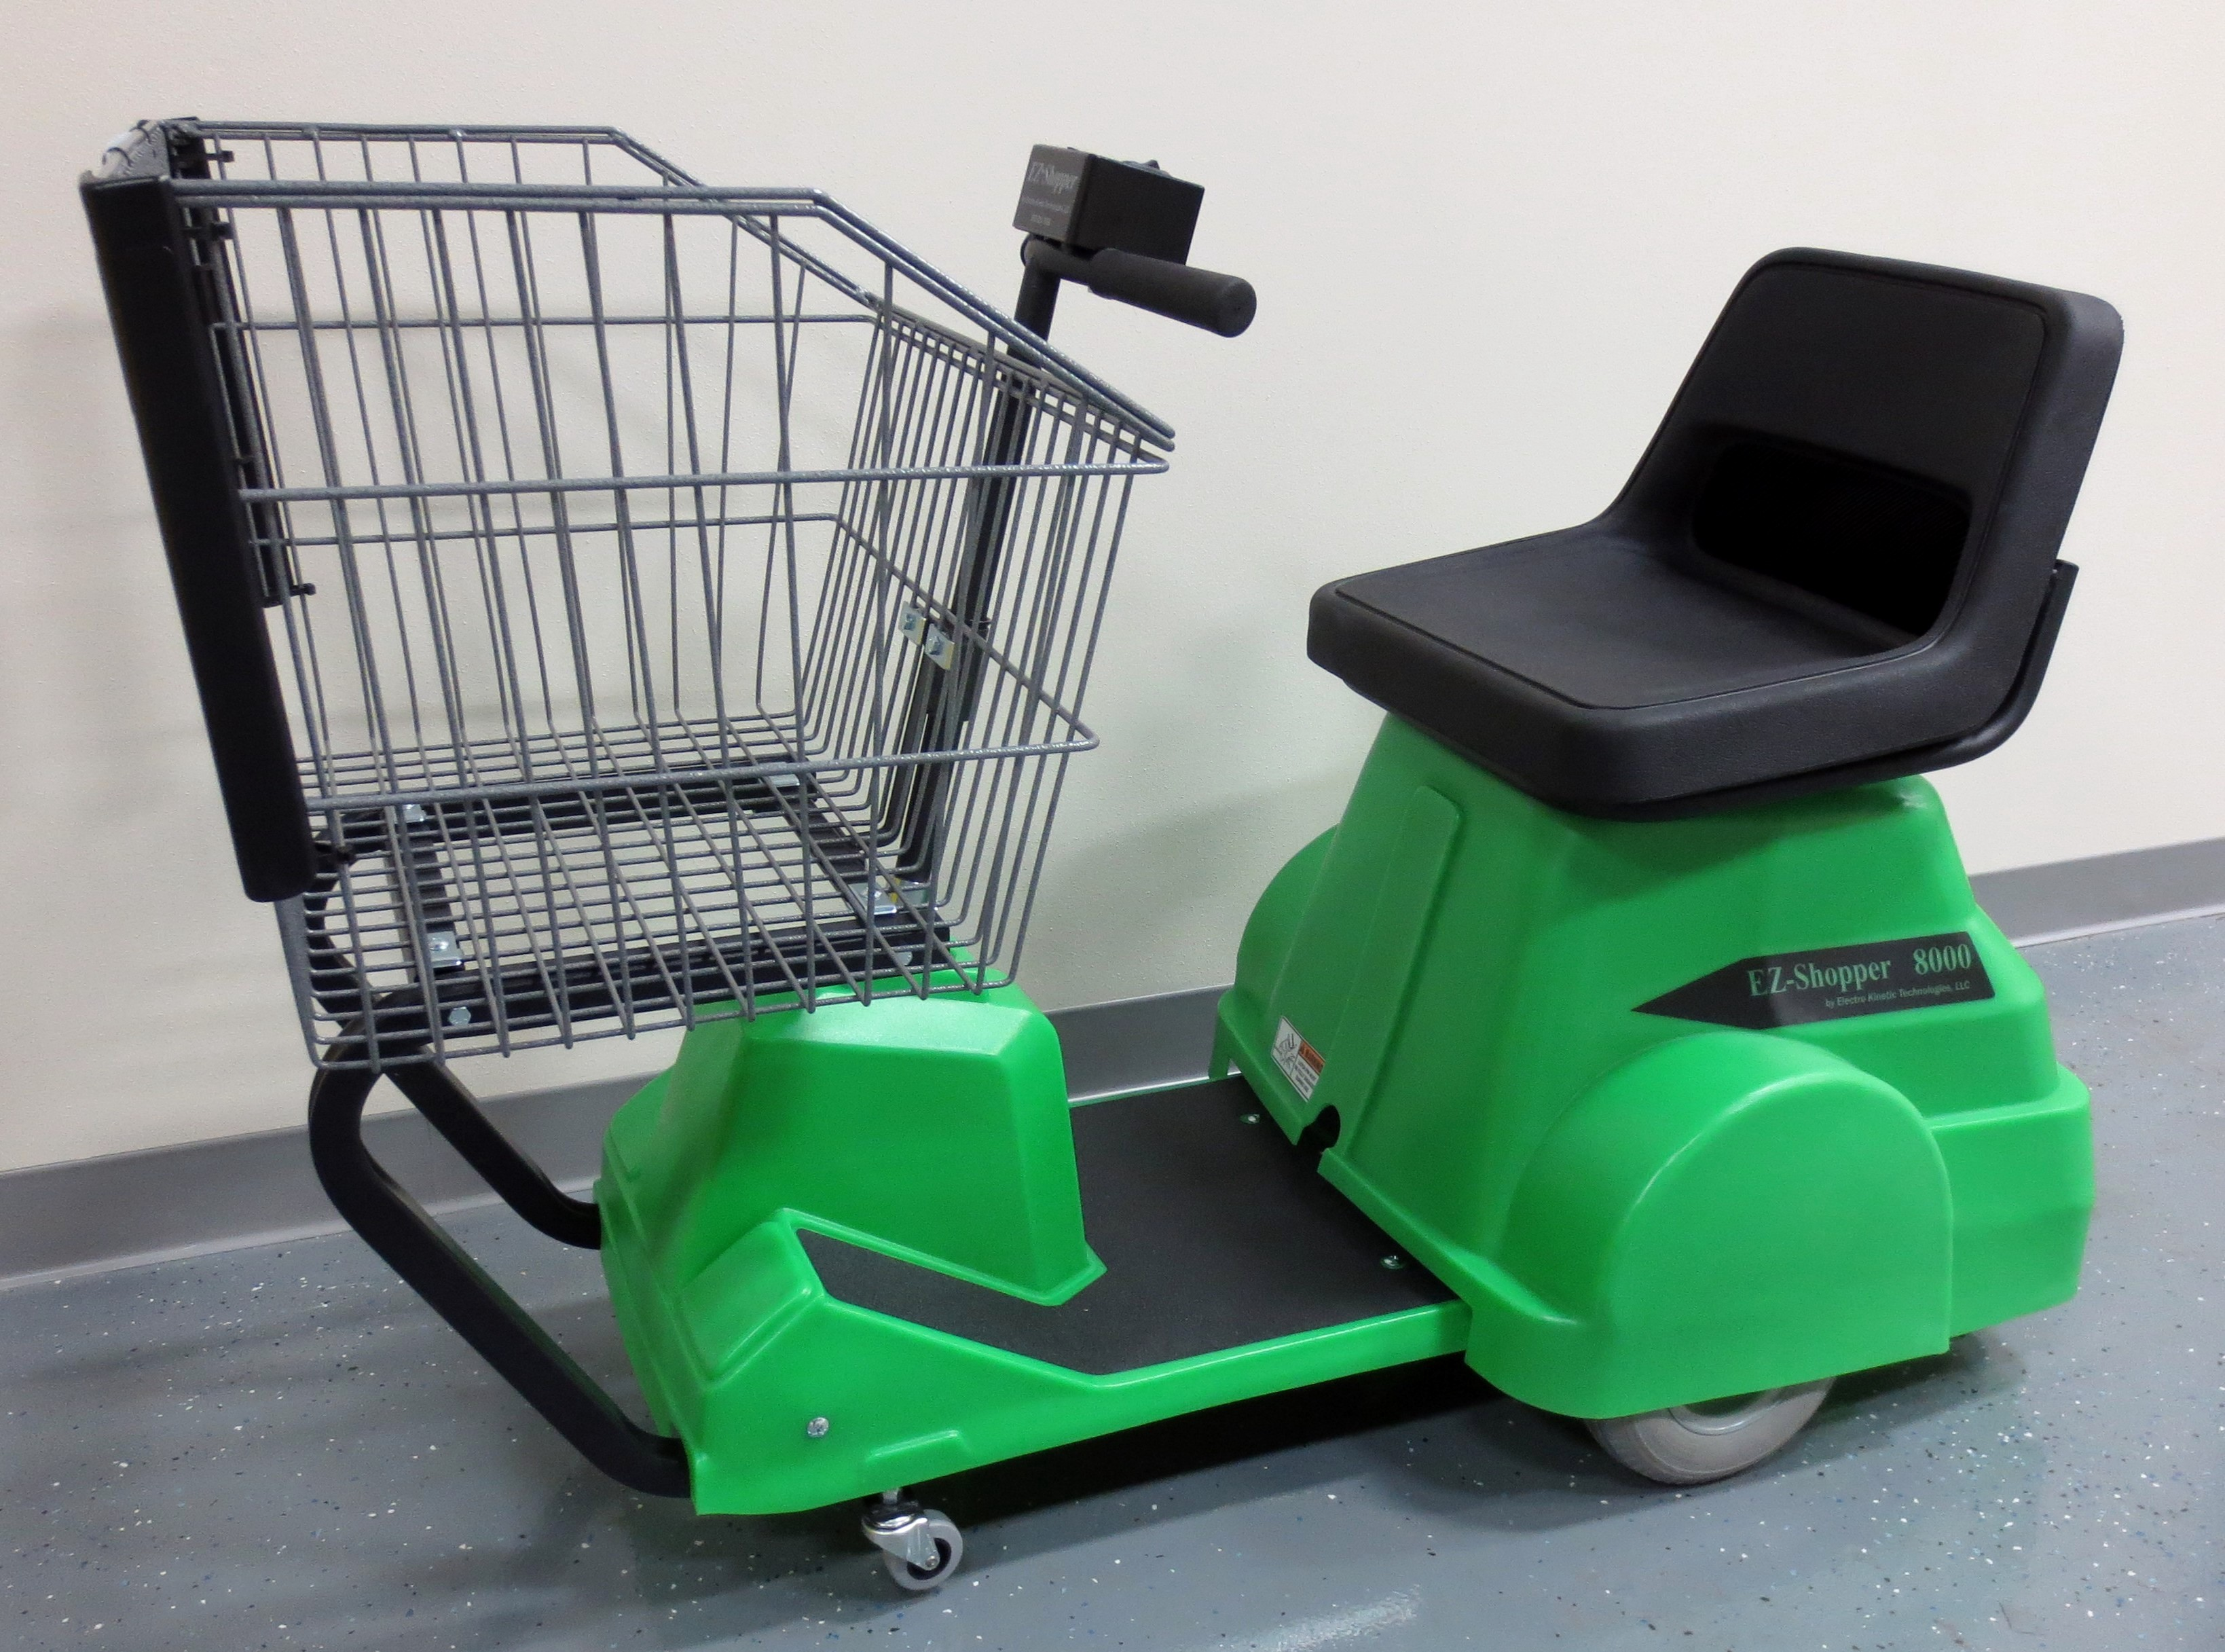 8000 Electric Shopping Cart - Electro Kinetic Technologies